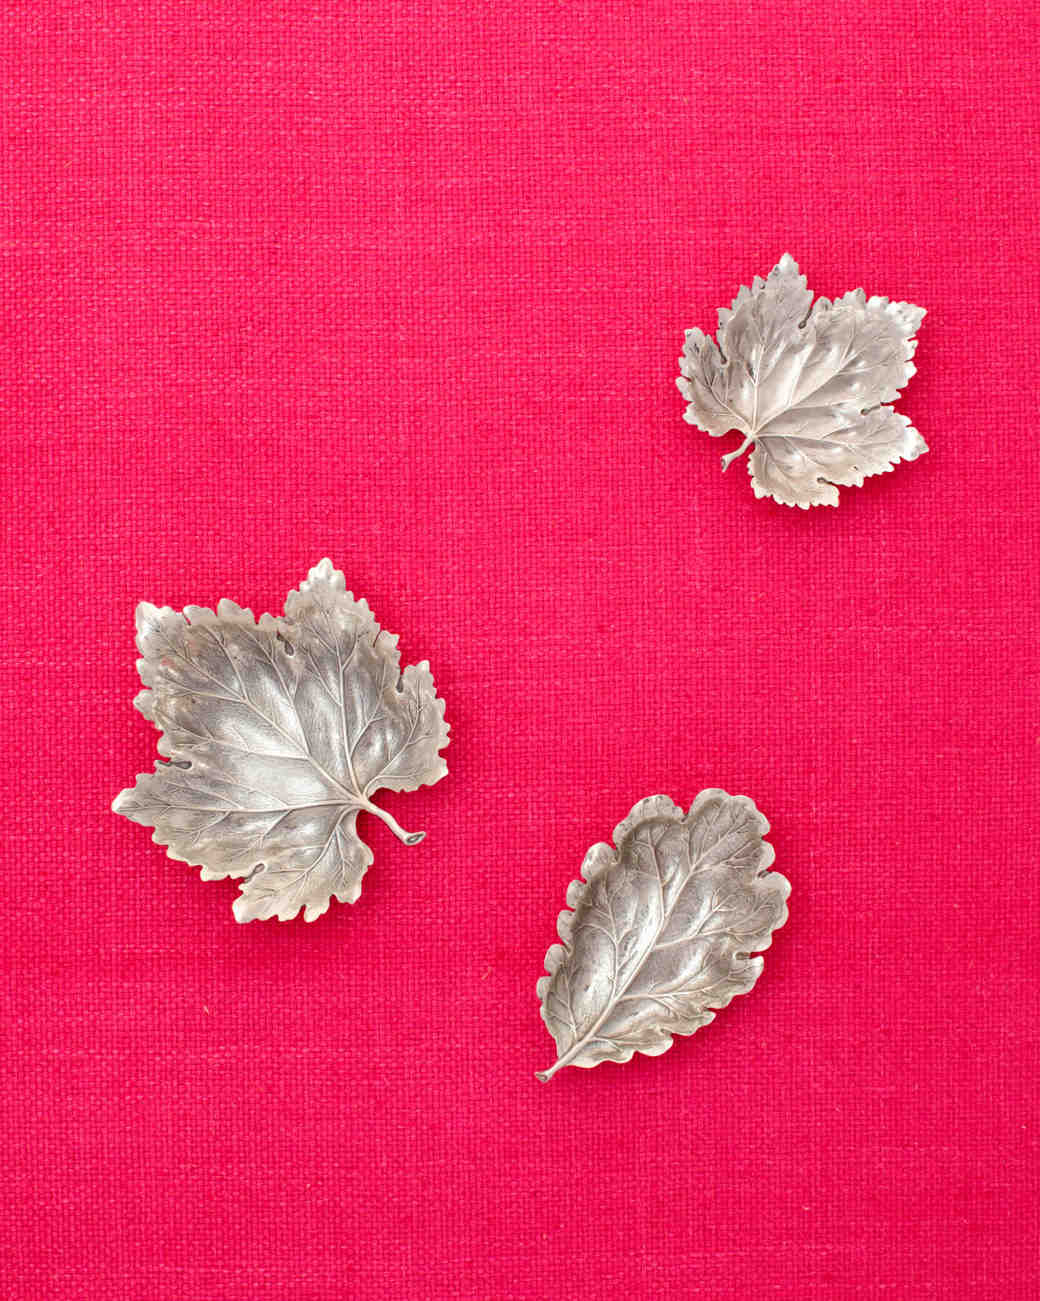 silver-leaves-wd107851.jpg